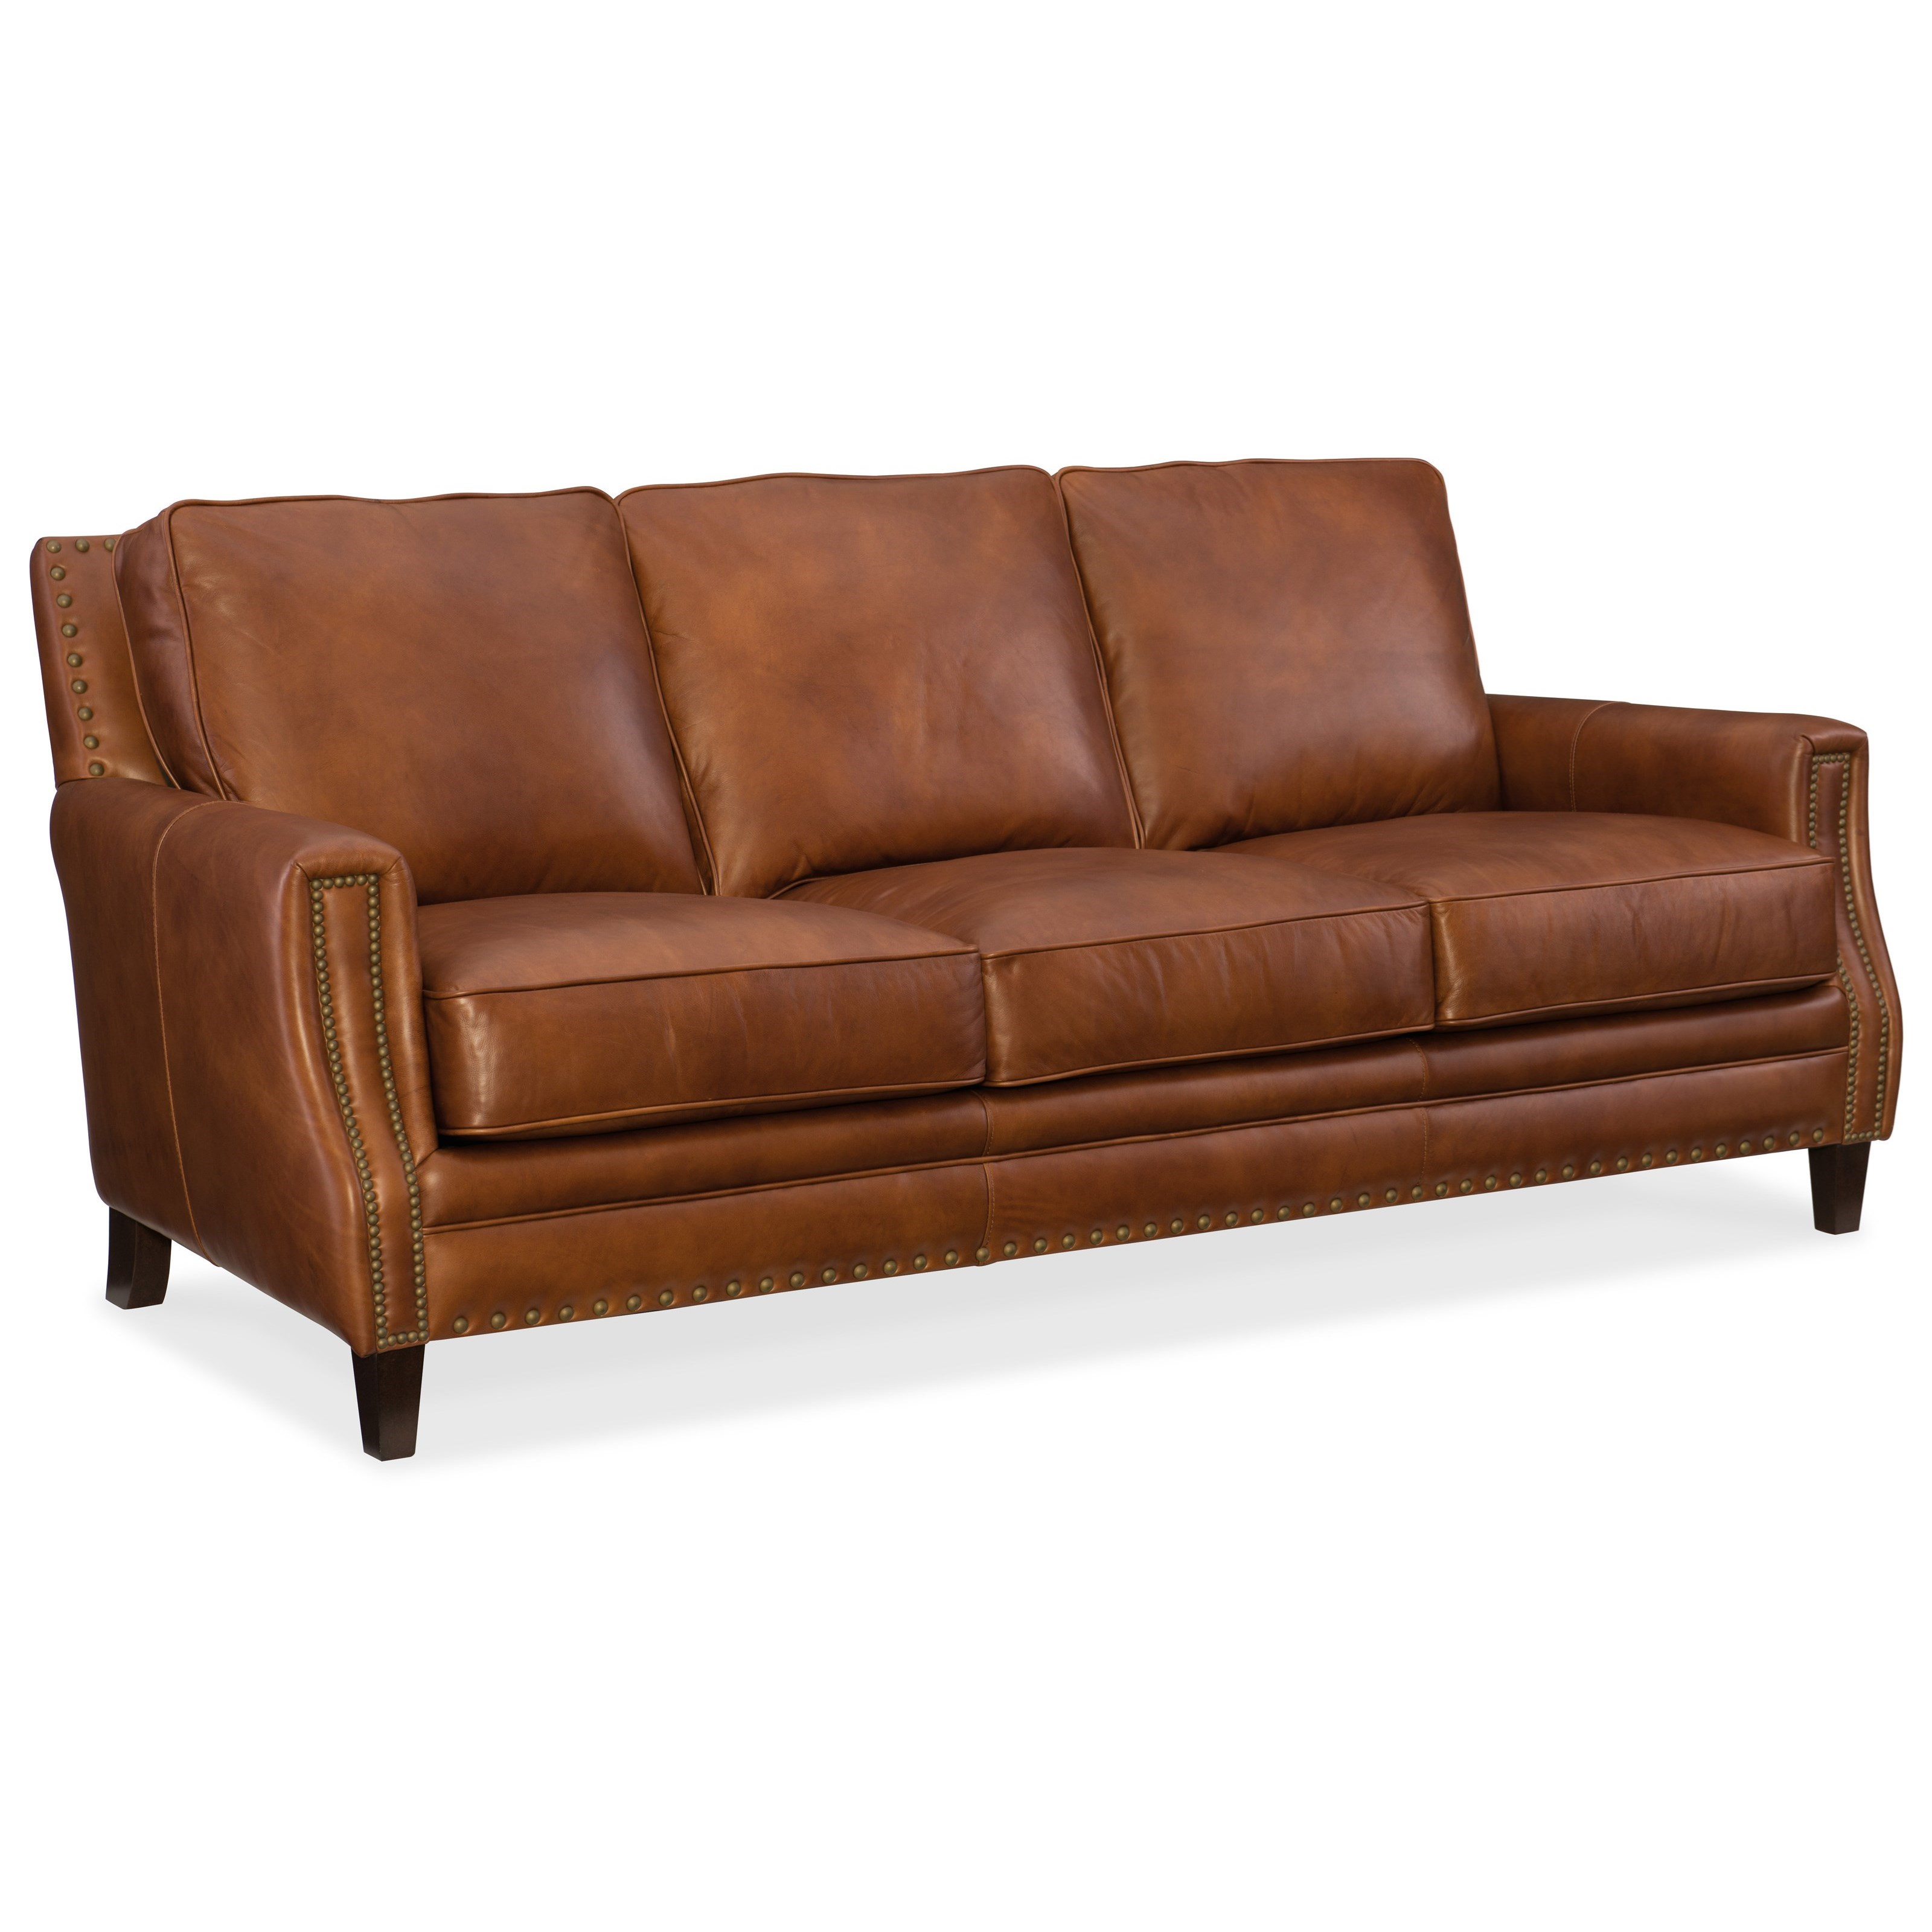 Exton Stationary Sofa by Hooker Furniture at Alison Craig Home Furnishings